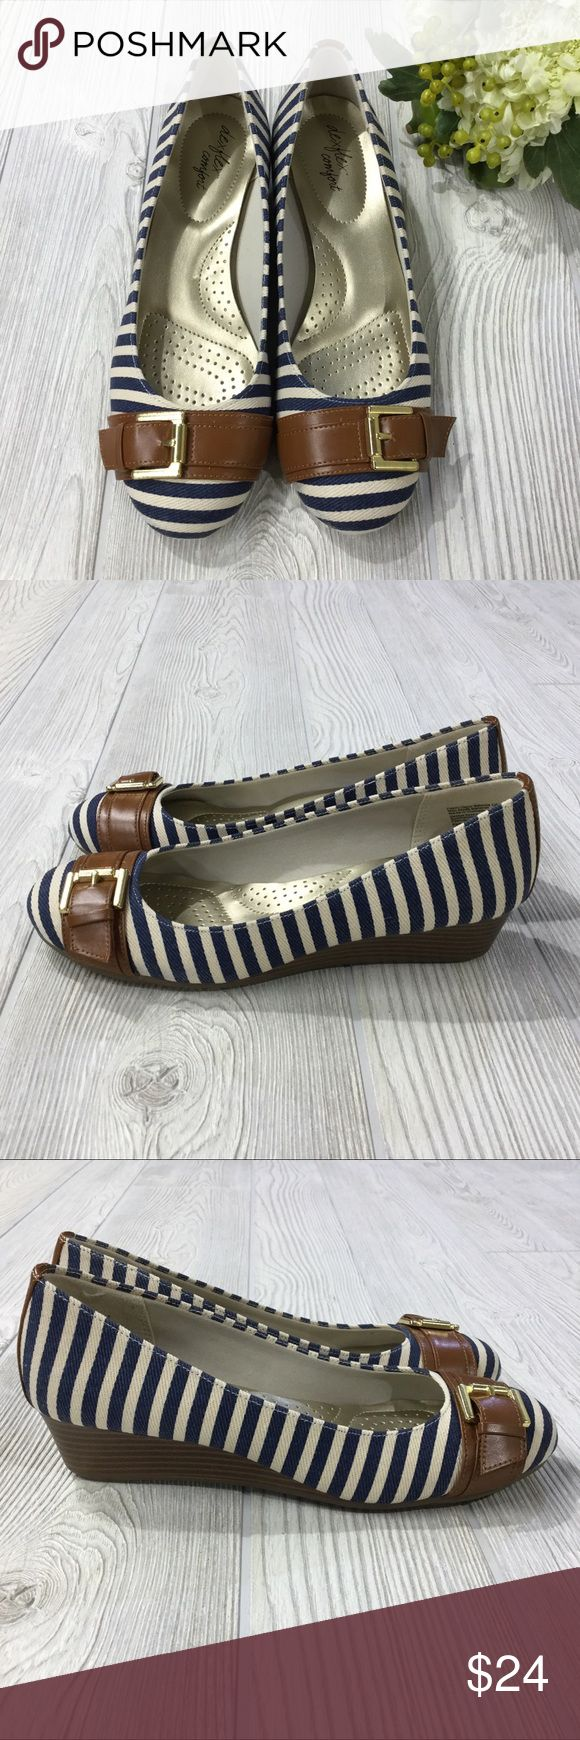 "Striped Wedge w/ Buckle Detail NWOT Striped Wedge w/ Toe Buckle Detail (non adjustable), Navy & Ivory Stripe, Faux Wood Wedge Detail, Gold DexFlex Comfort Insole, 1.5"" Wedge Height, Man Made Materials, NWOT DexFlex Shoes Wedges"